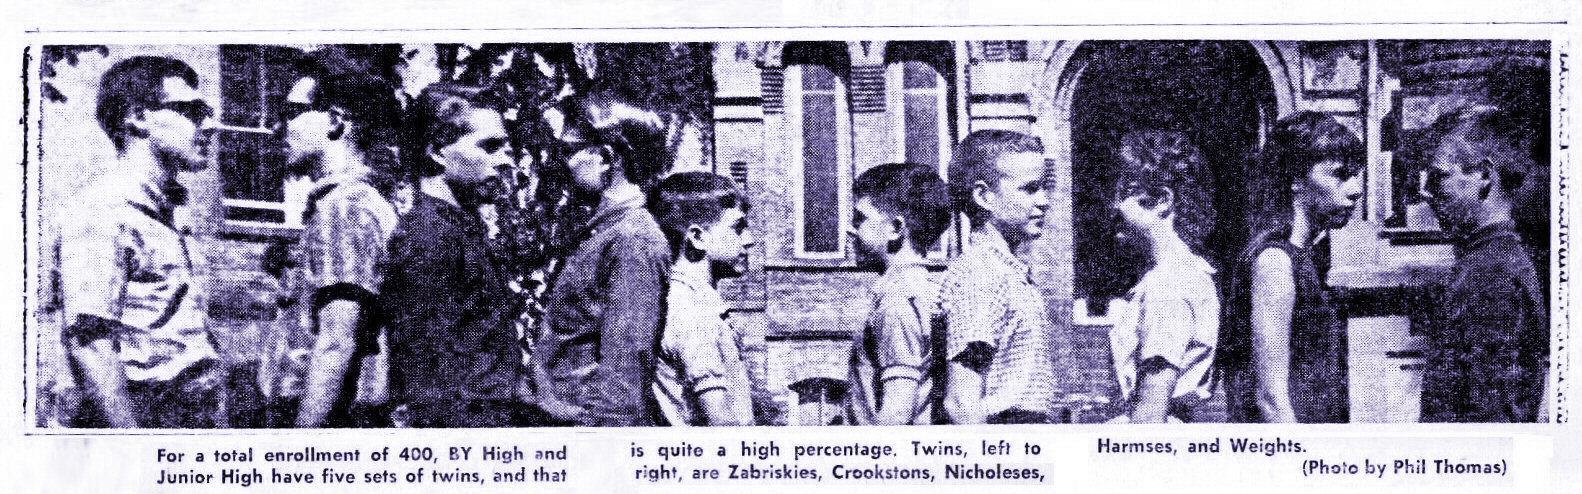 Photo by Phil Thomas - 5 sets of twins at BYH